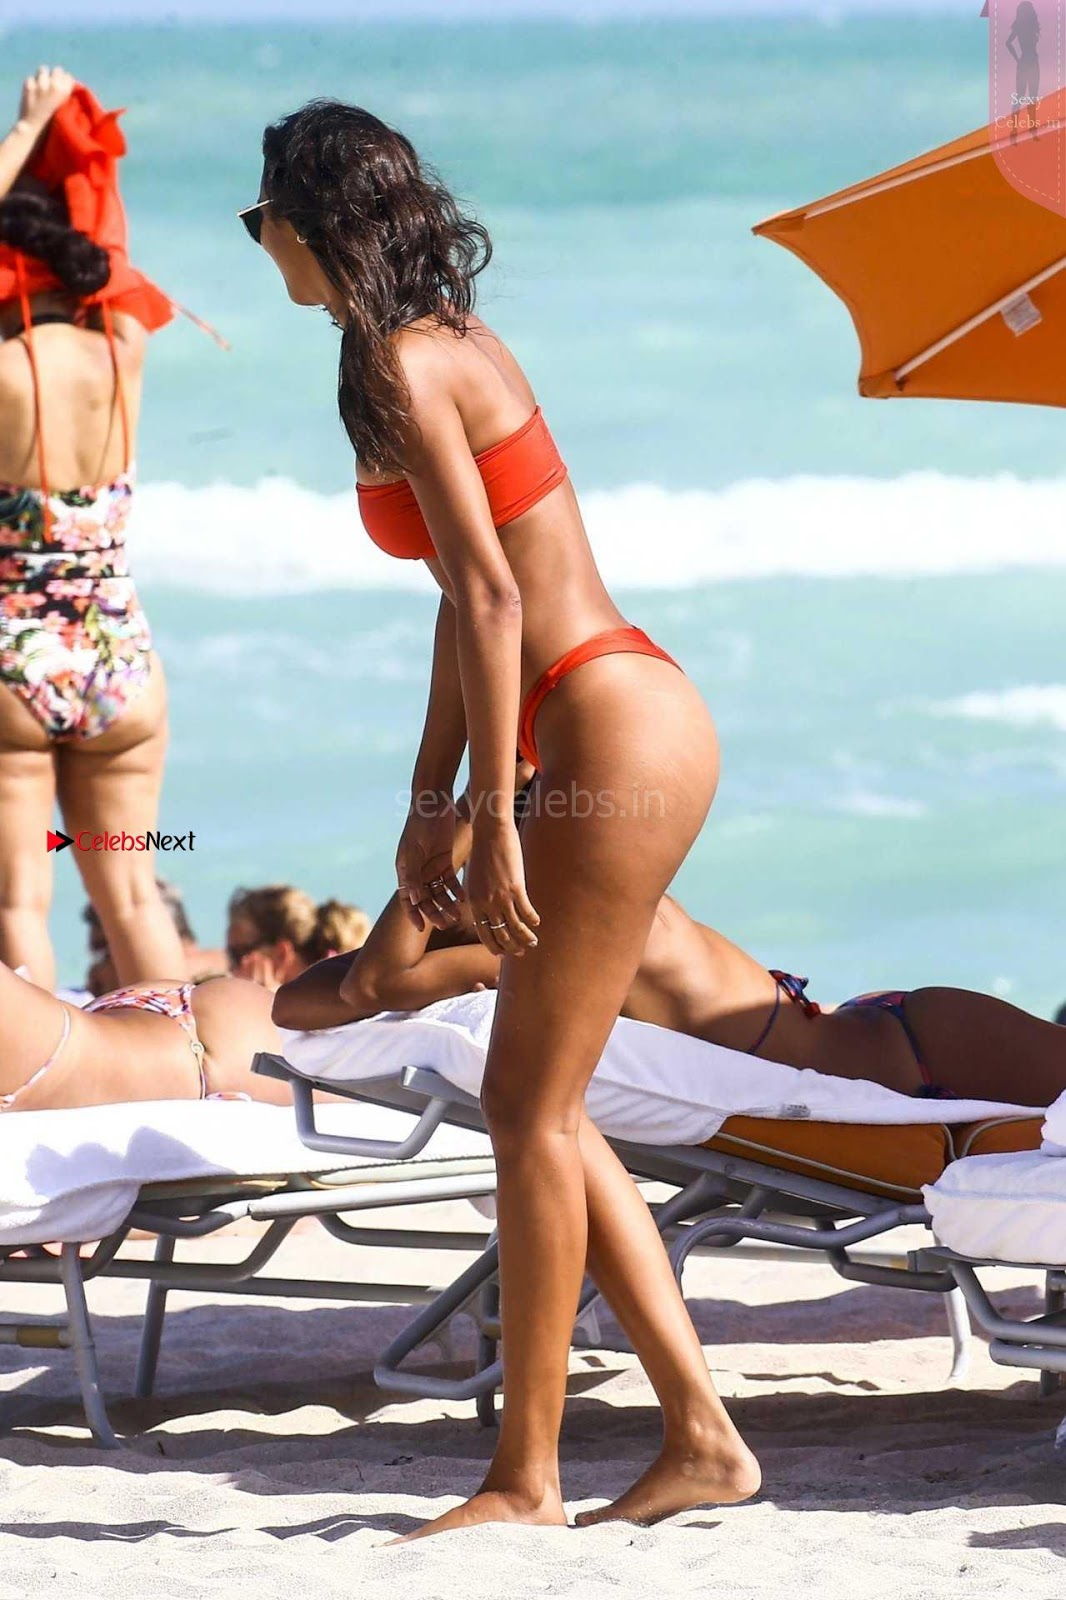 Lais Ribeiro SexyLong Legs Hot Beautiful Ass in Red Thongs Cleavages WOW must see Feb 2018 ~ SexyCelebs.in Exclusive